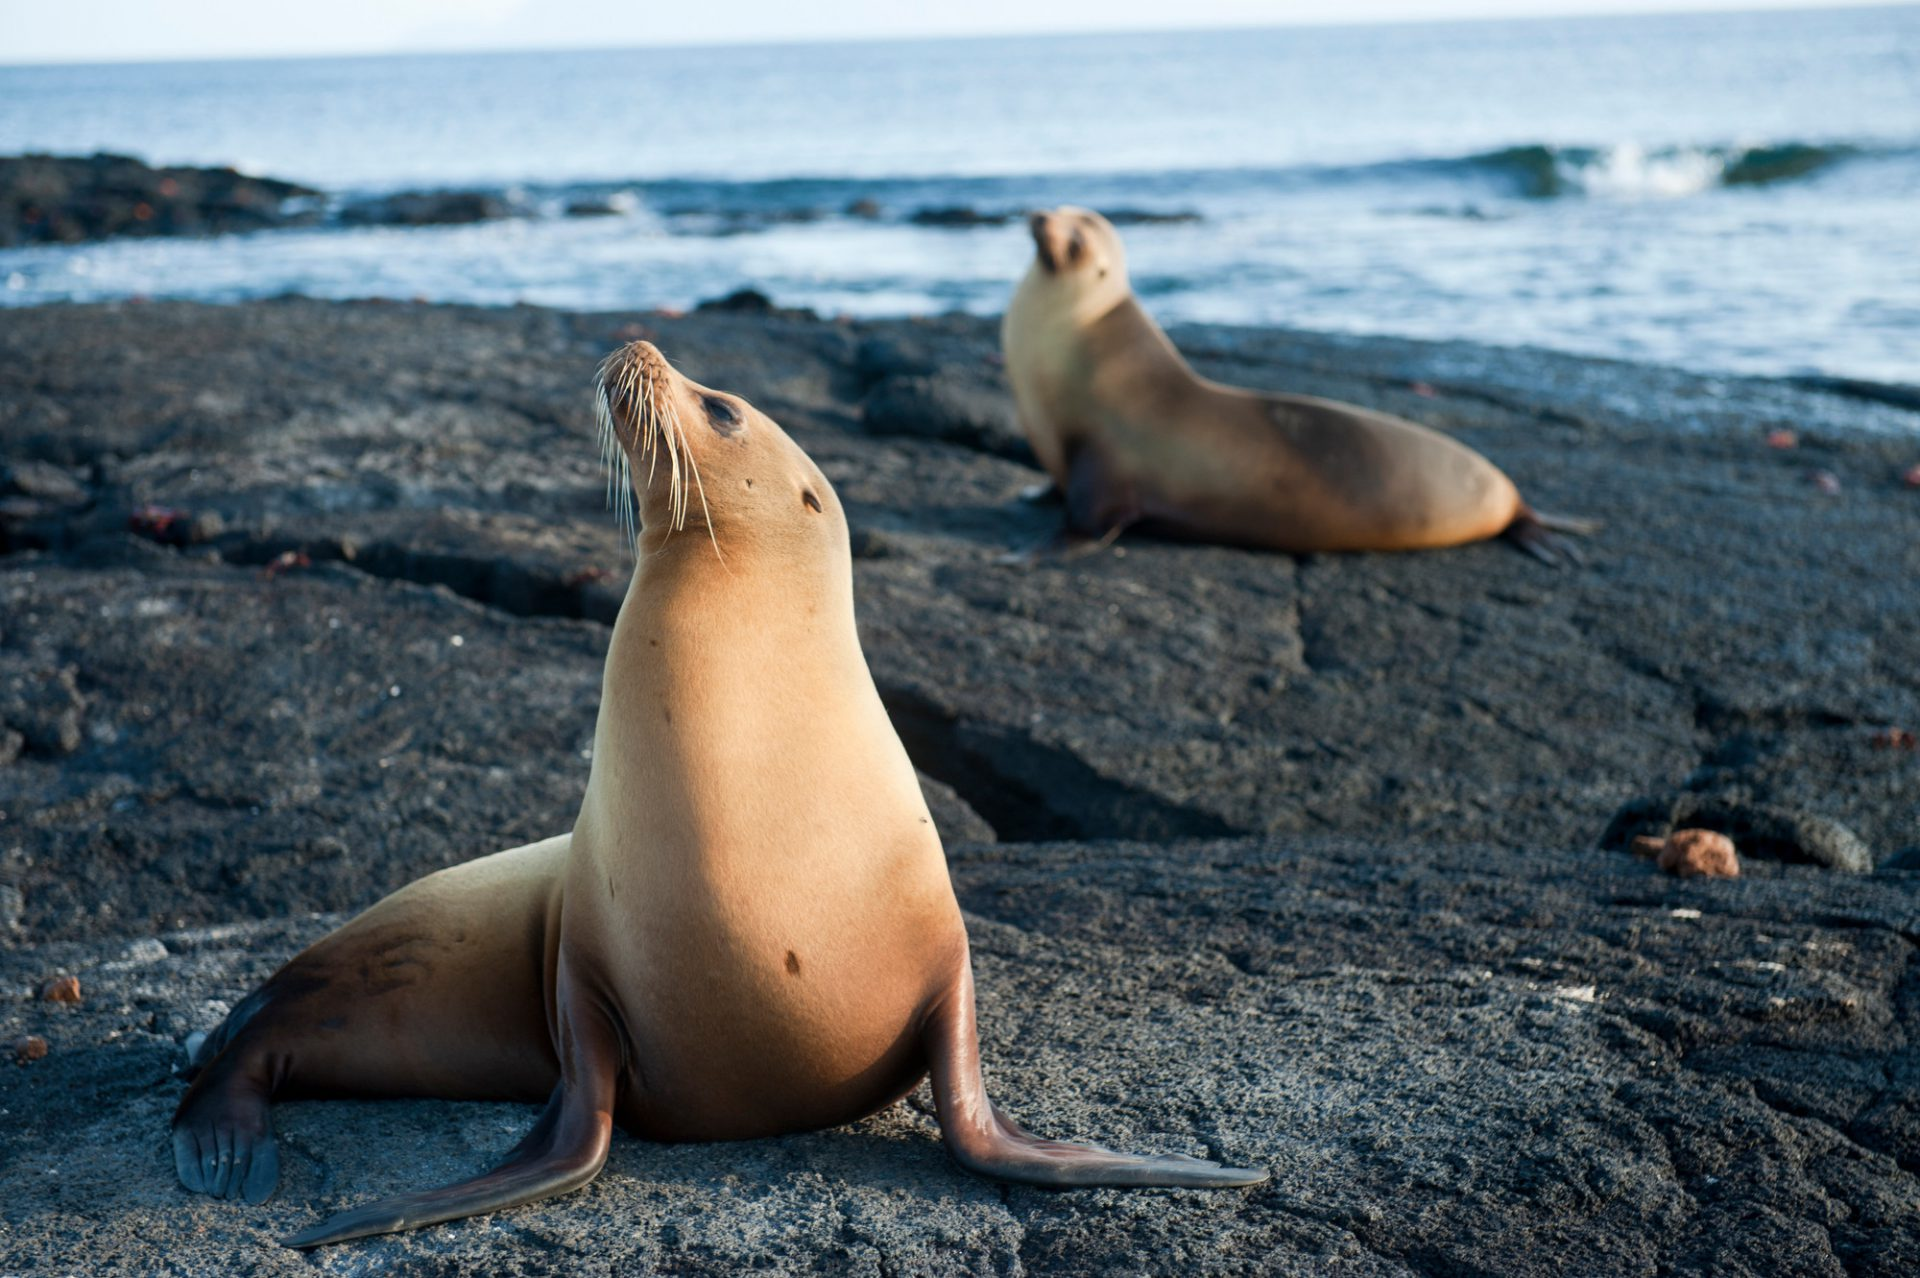 Photo: Endangered Galapagos sea lions (Zalophus wollebaeki) on Fernandina Island in Galapagos National Park.